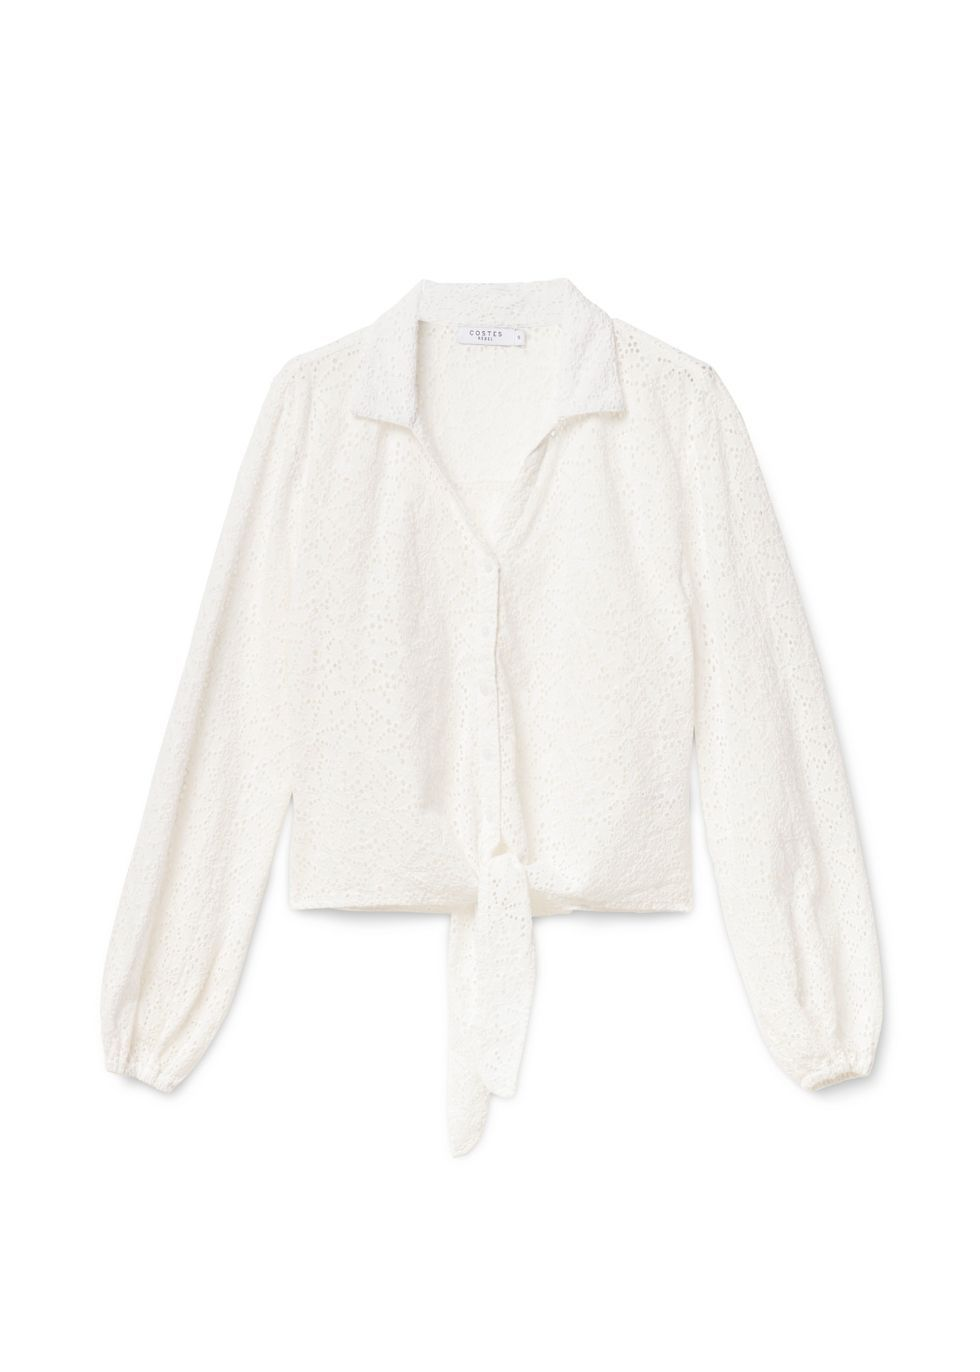 Broderie Knot Blouse | Costes Fashion | Mode, Kleding, Clothes